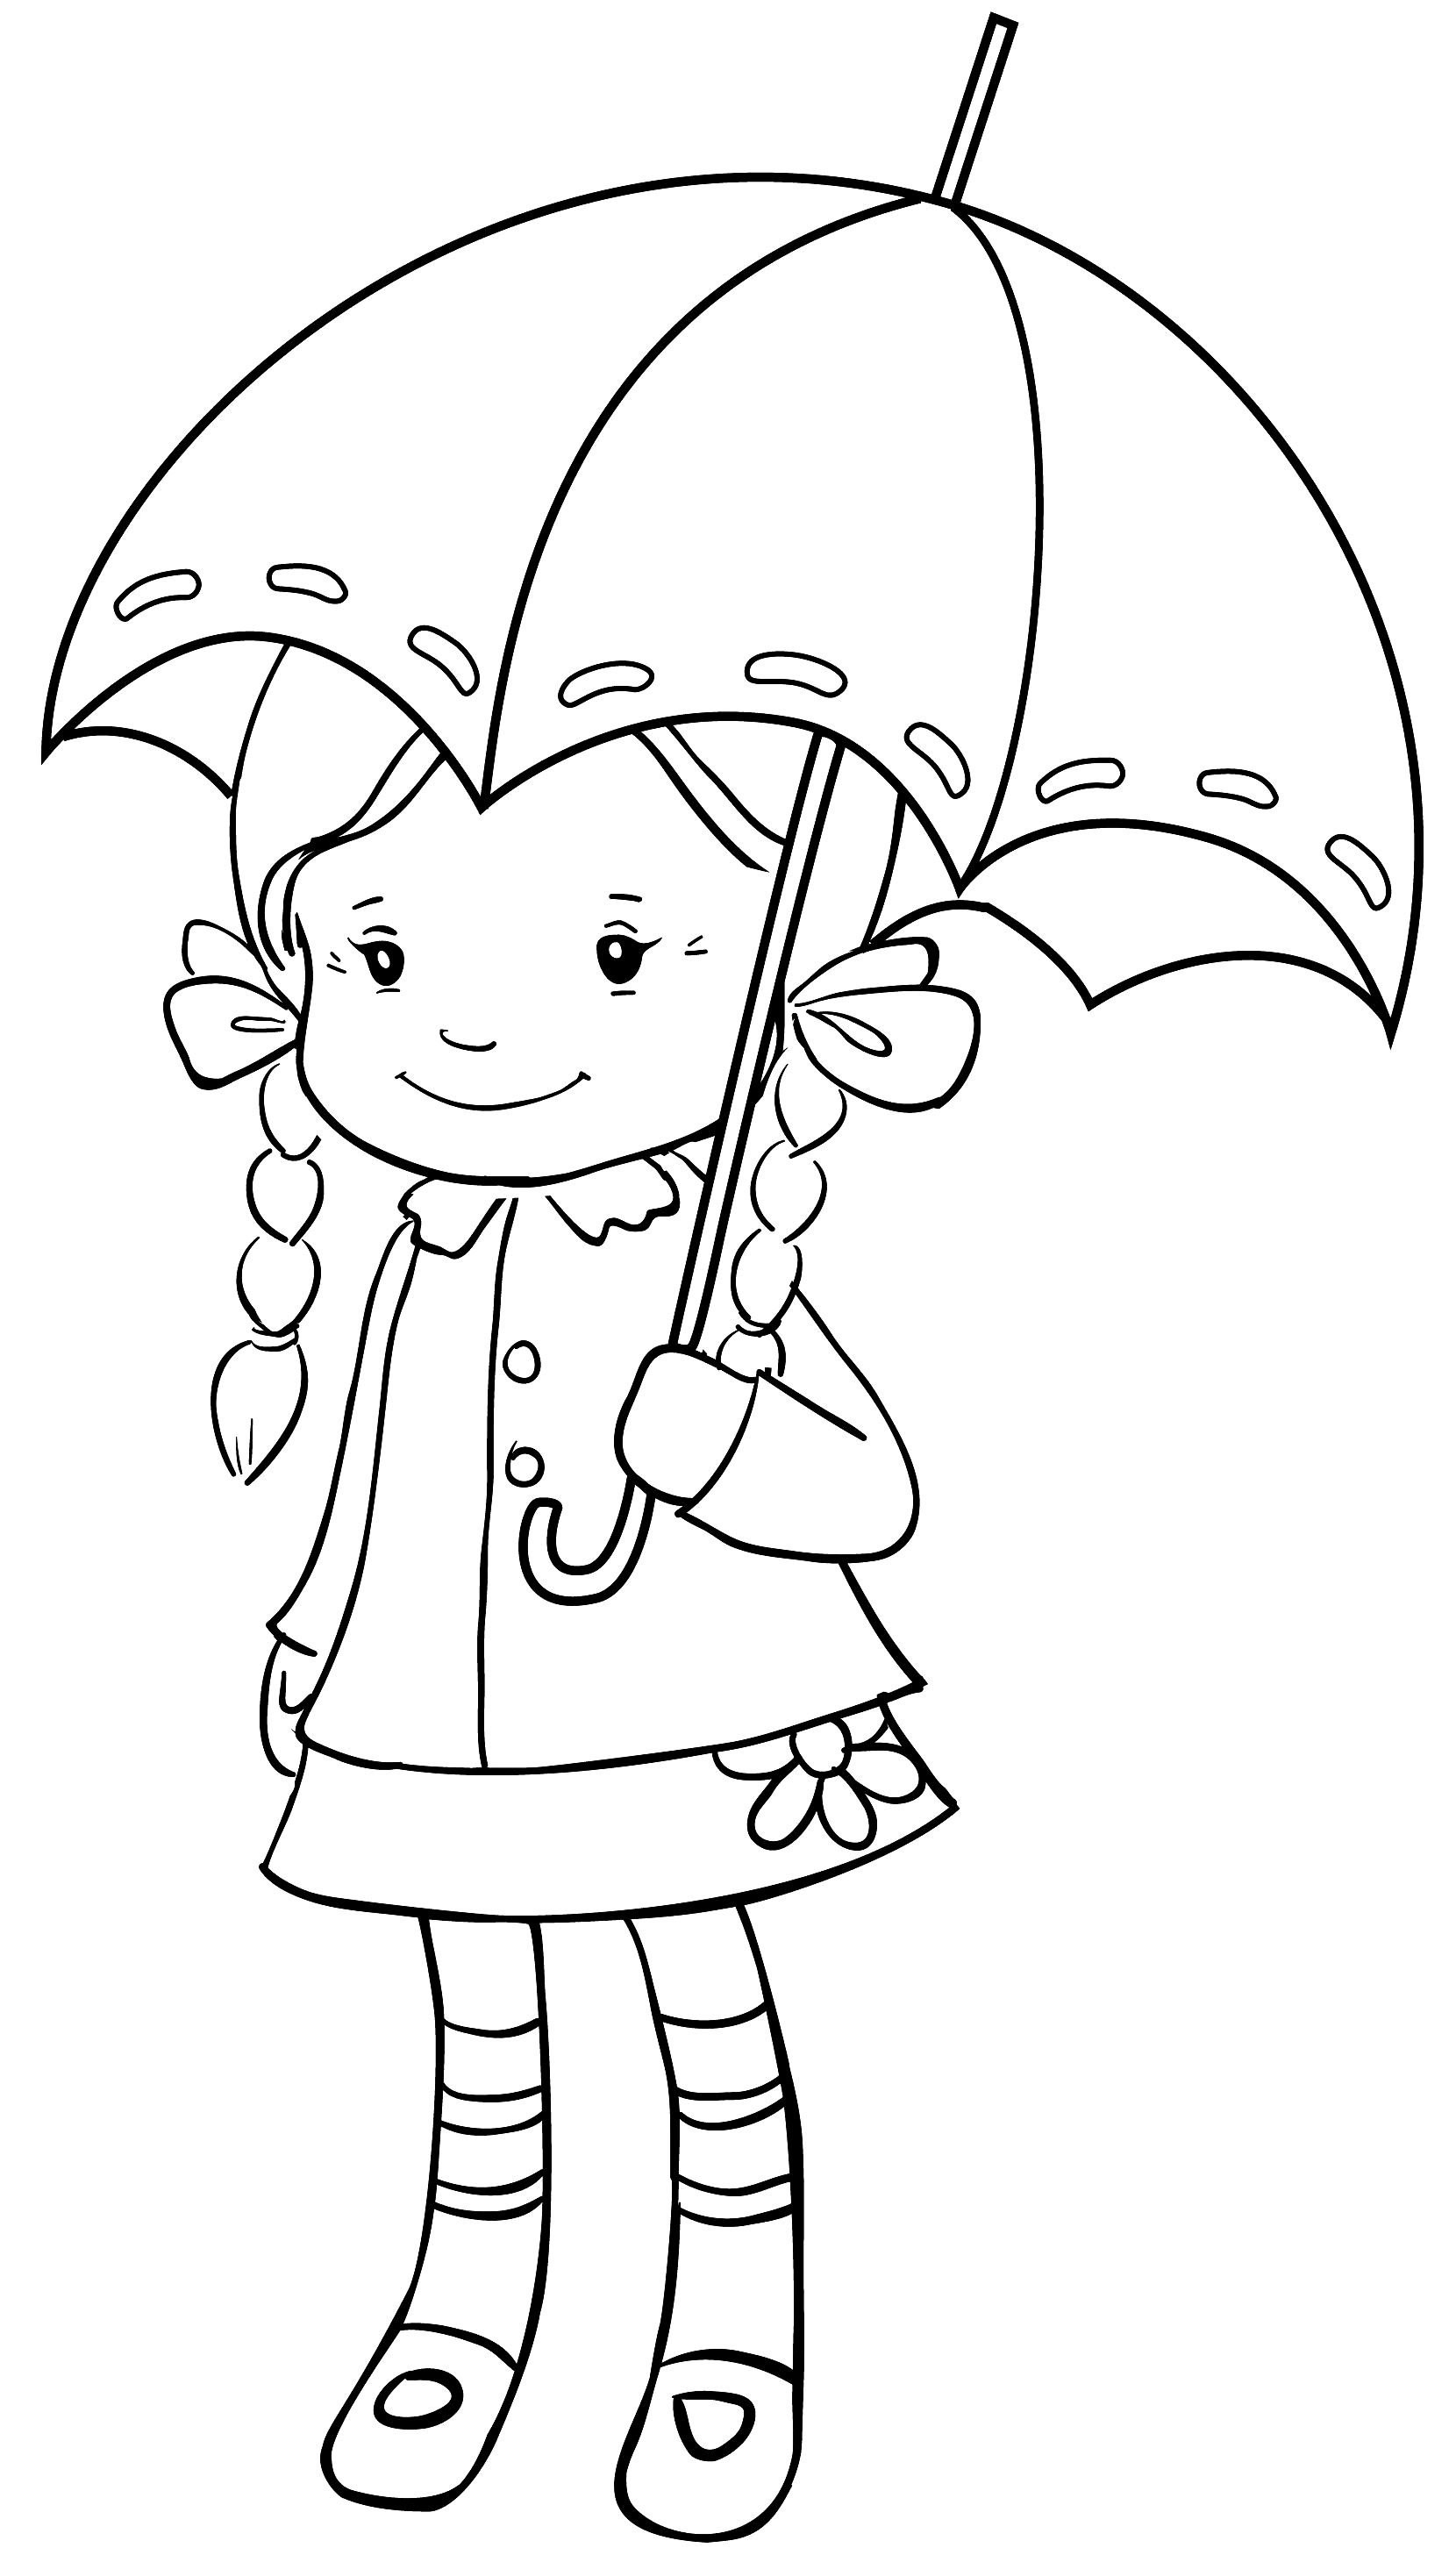 Spring rain coloring pages - Crissy And Umbrella Kids Coloringcoloring Pagessilhouette